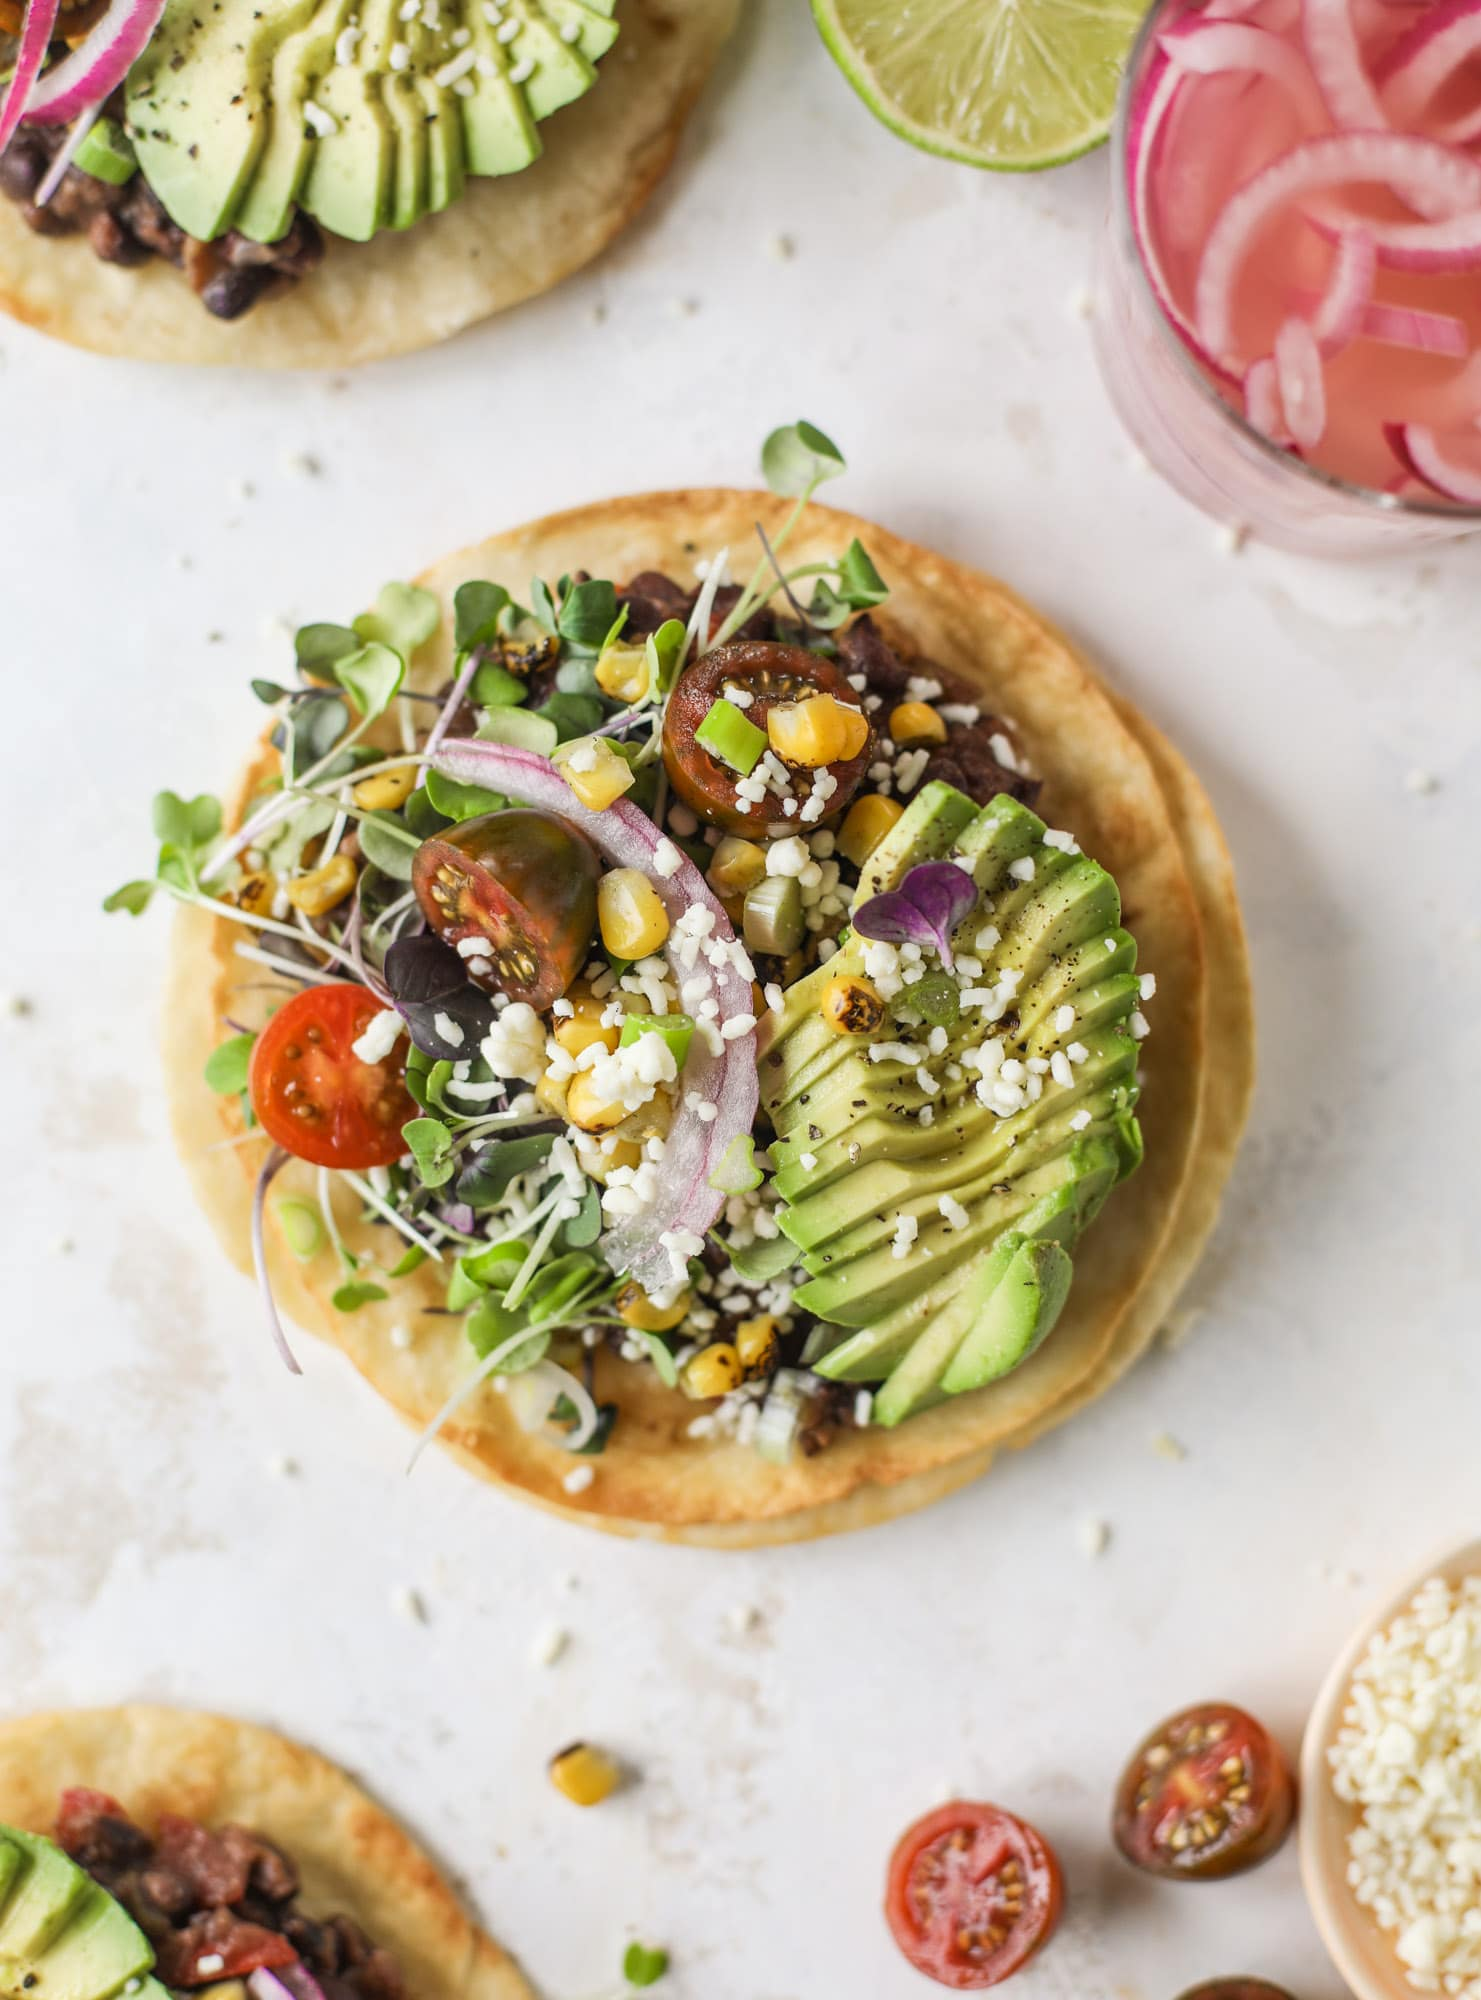 These saucy black bean tostadas are super flavorful and easy for a weeknight meal. Crunchy tortillas topped with beans and tons of veggies. Delish!